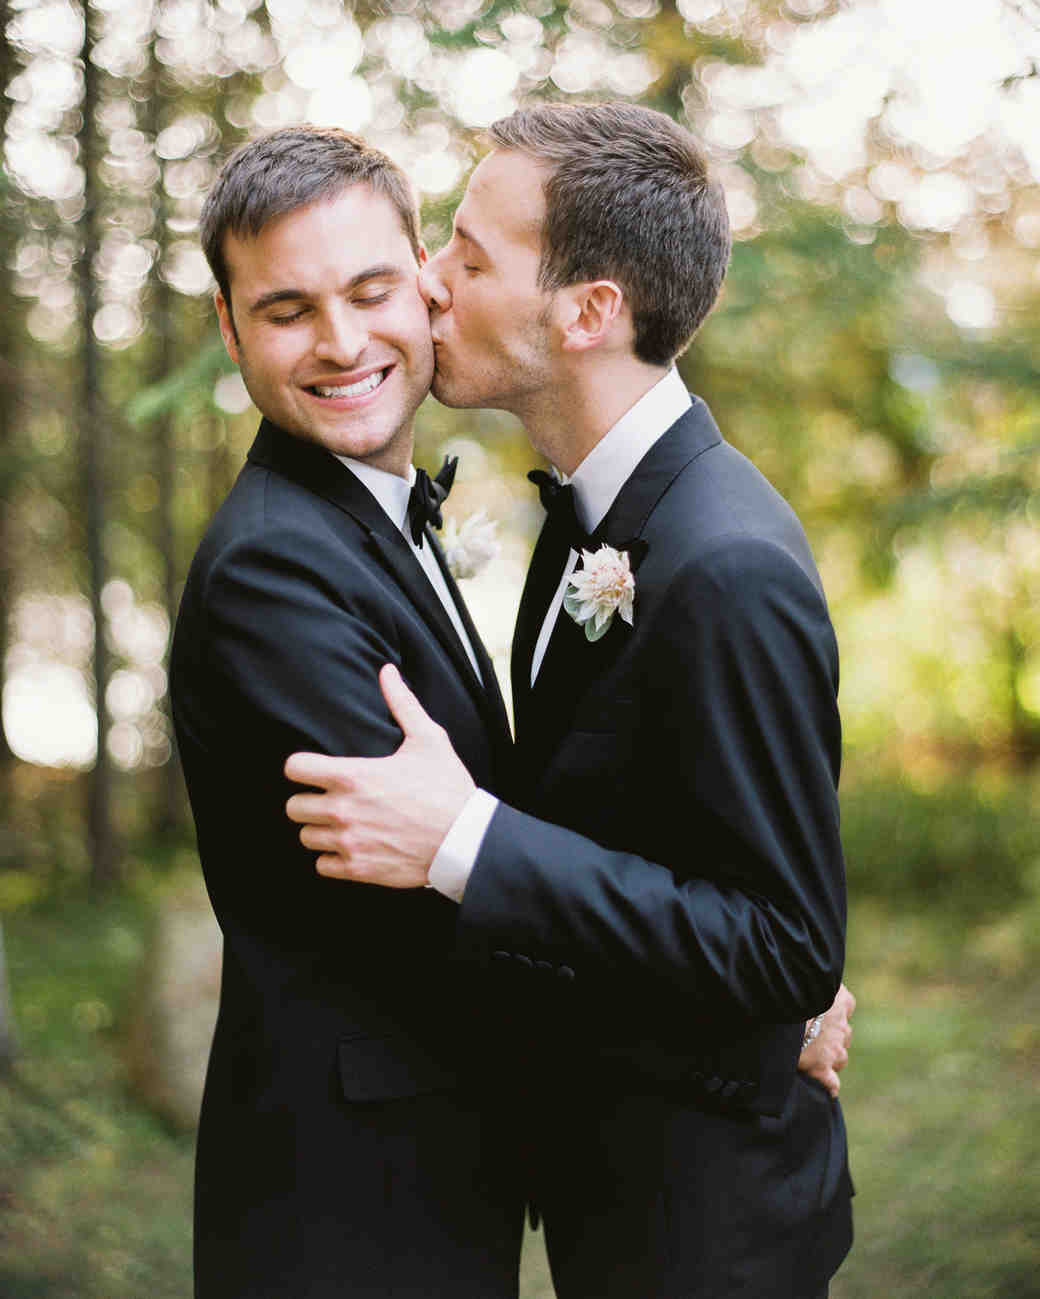 tory sean wedding lake placid new york couple kiss grooms